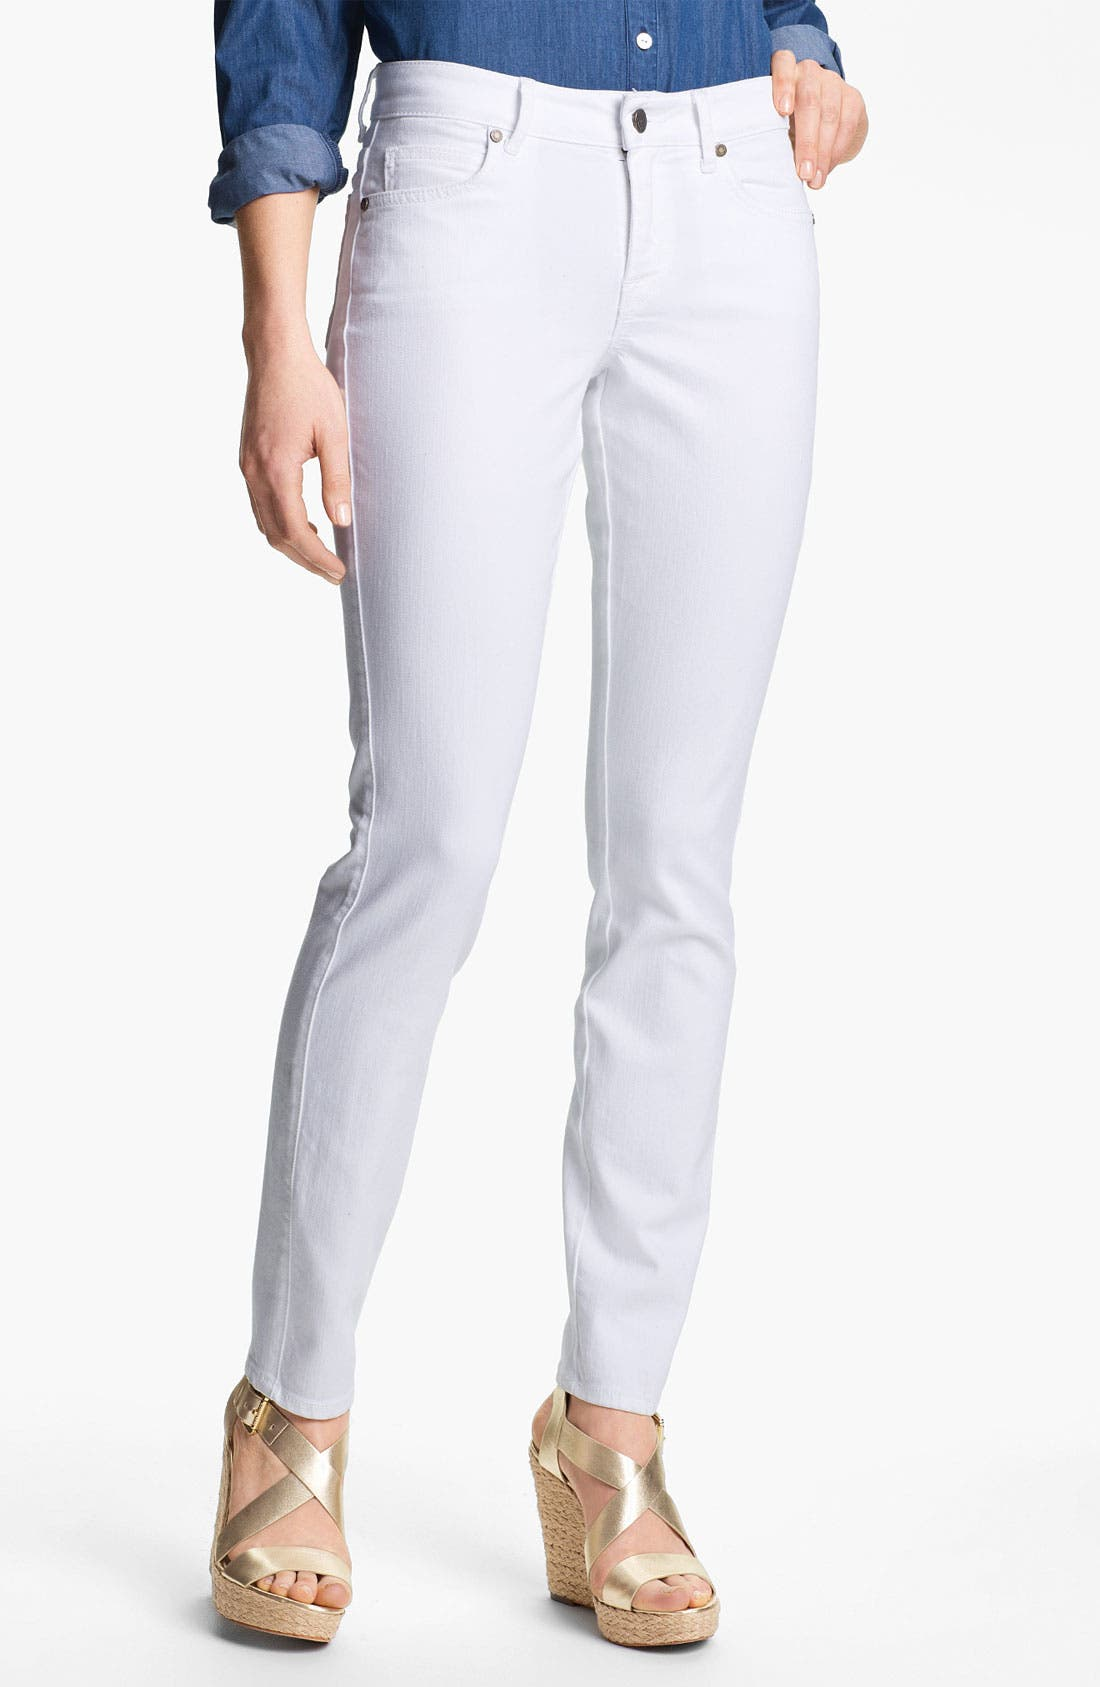 Main Image - CJ by Cookie Johnson 'Peace' Skinny Jeans